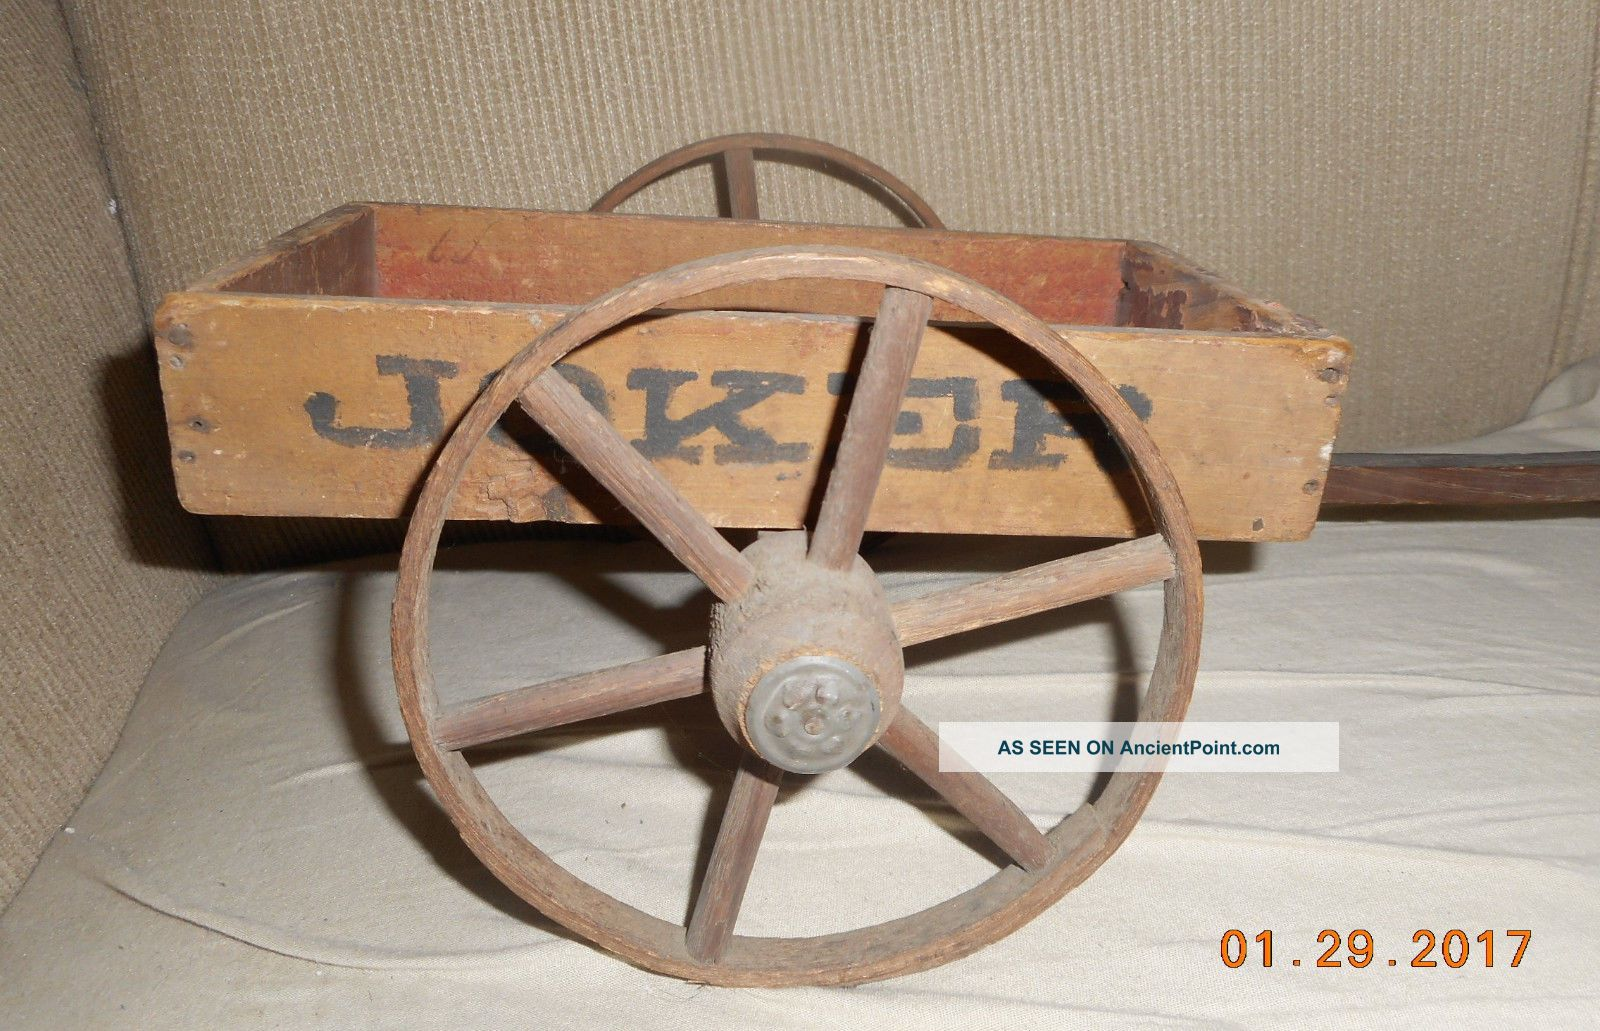 Aafa Antique Long Folk Art Joker Cart Wagon Toy Table Top Display Paint Primitives photo